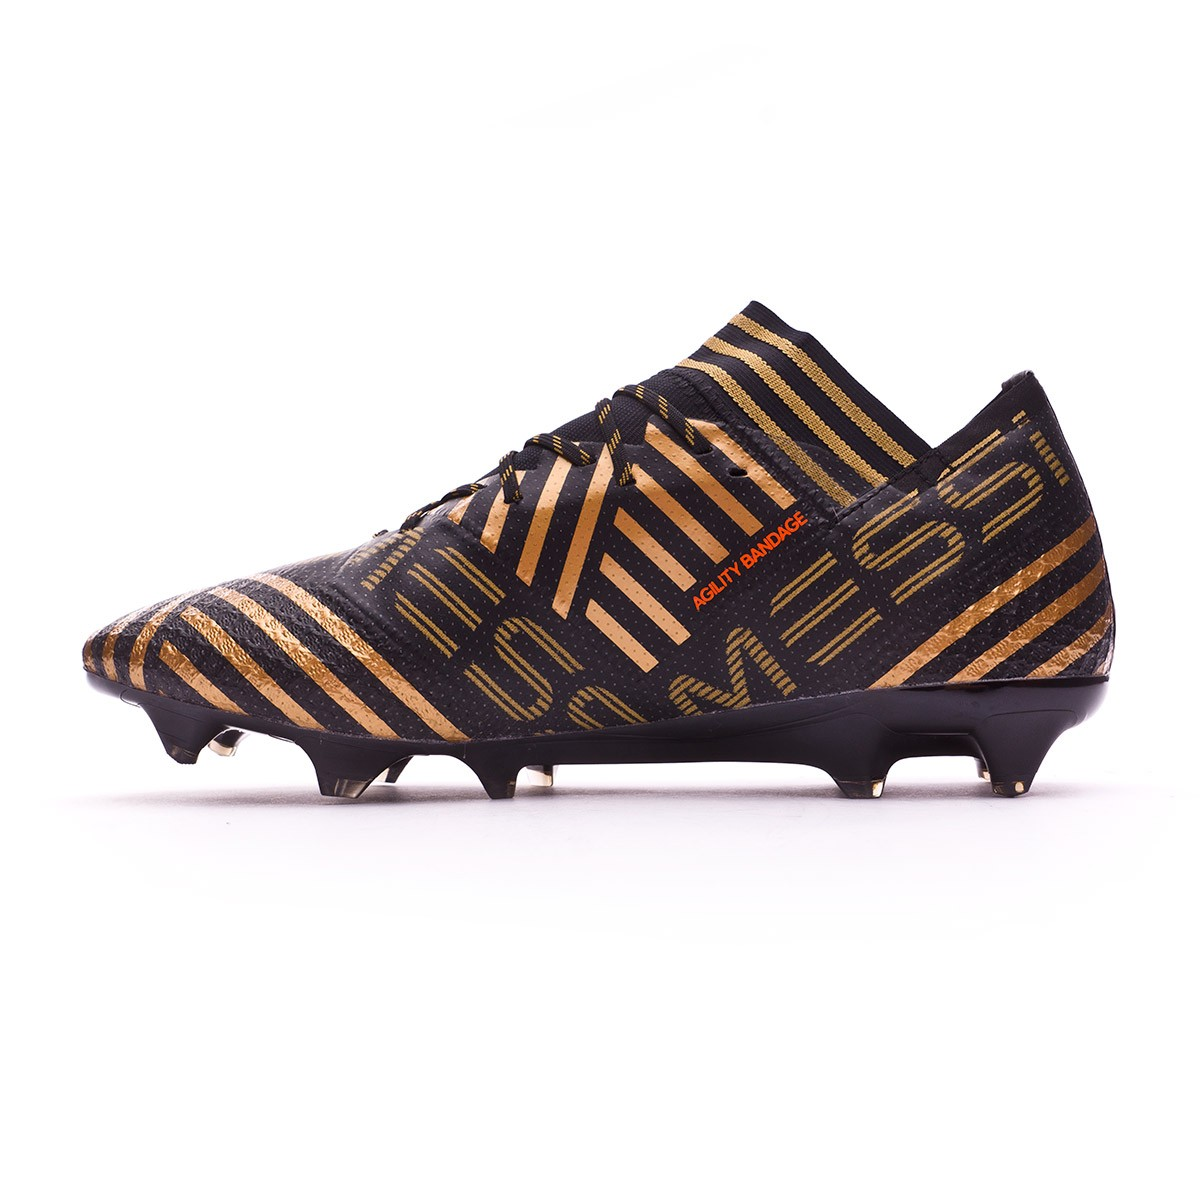 promo code 596de ff604 Boot adidas Nemeziz Messi 17.1 FG Core black-Solar red-Tactile gold  metallic - Football store Fútbol Emotion